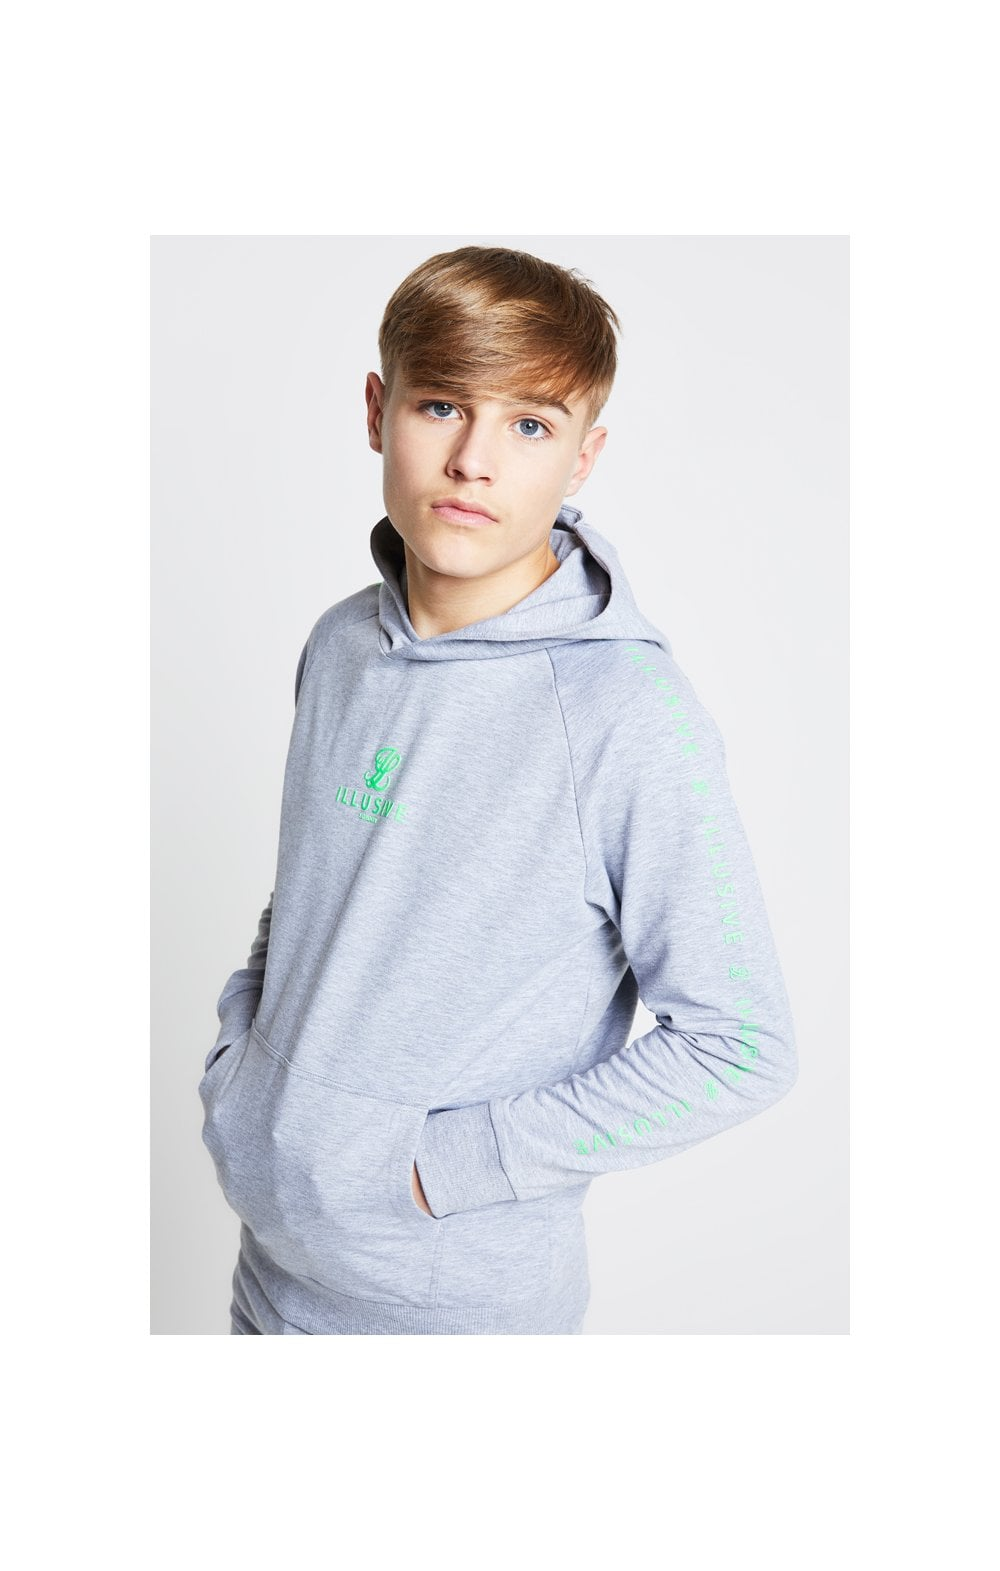 Illusive London Overhead Hoodie - Grey & Neon Green